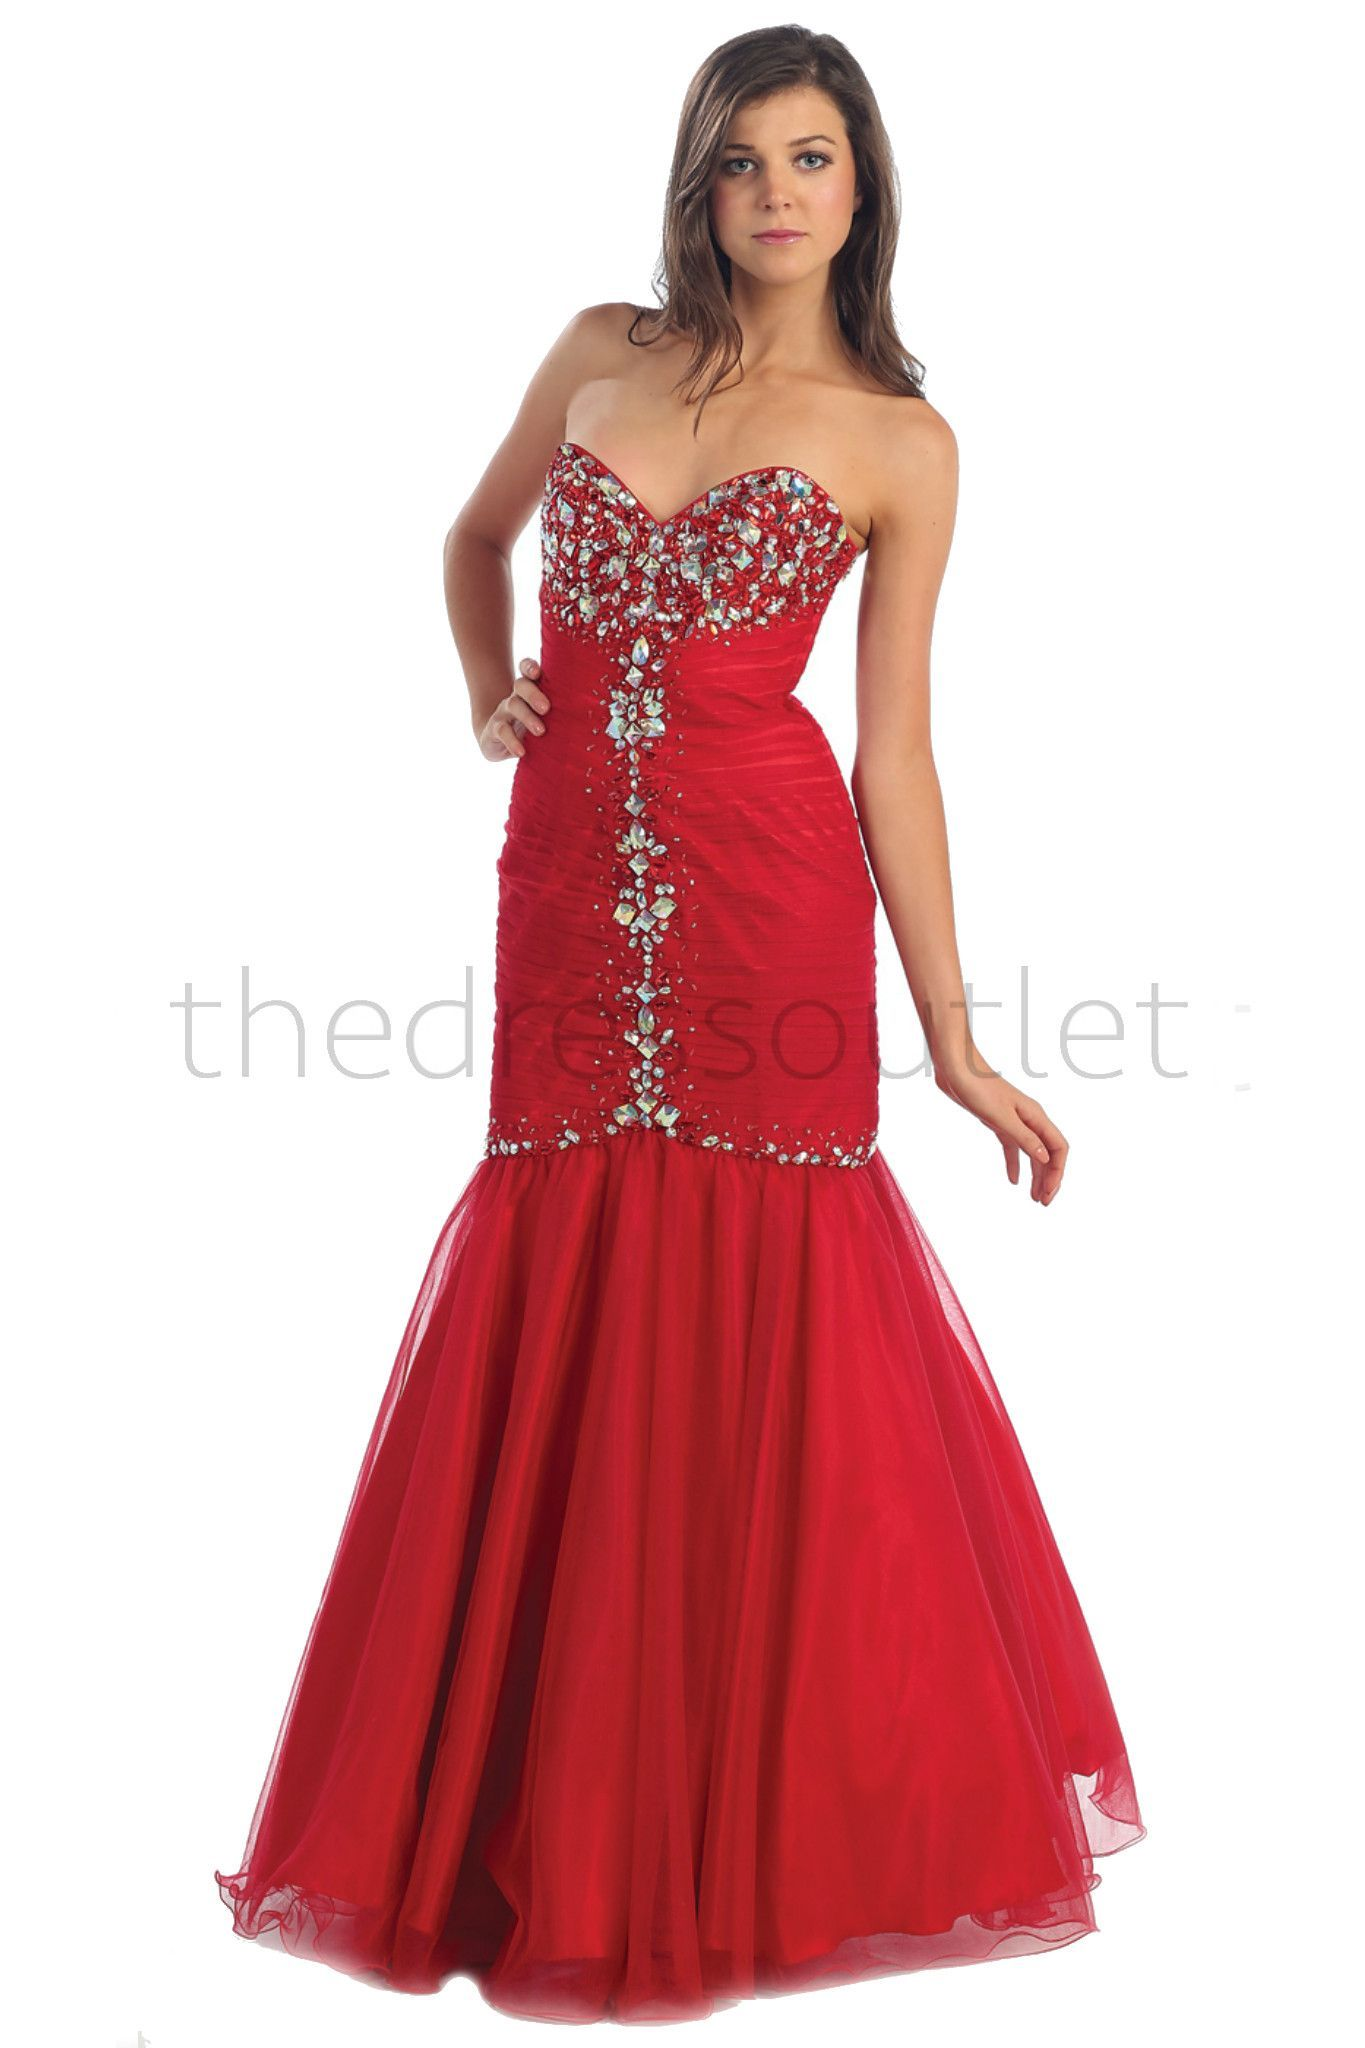 An amazing dress has a sweetheart neckline with a rhinestone bust